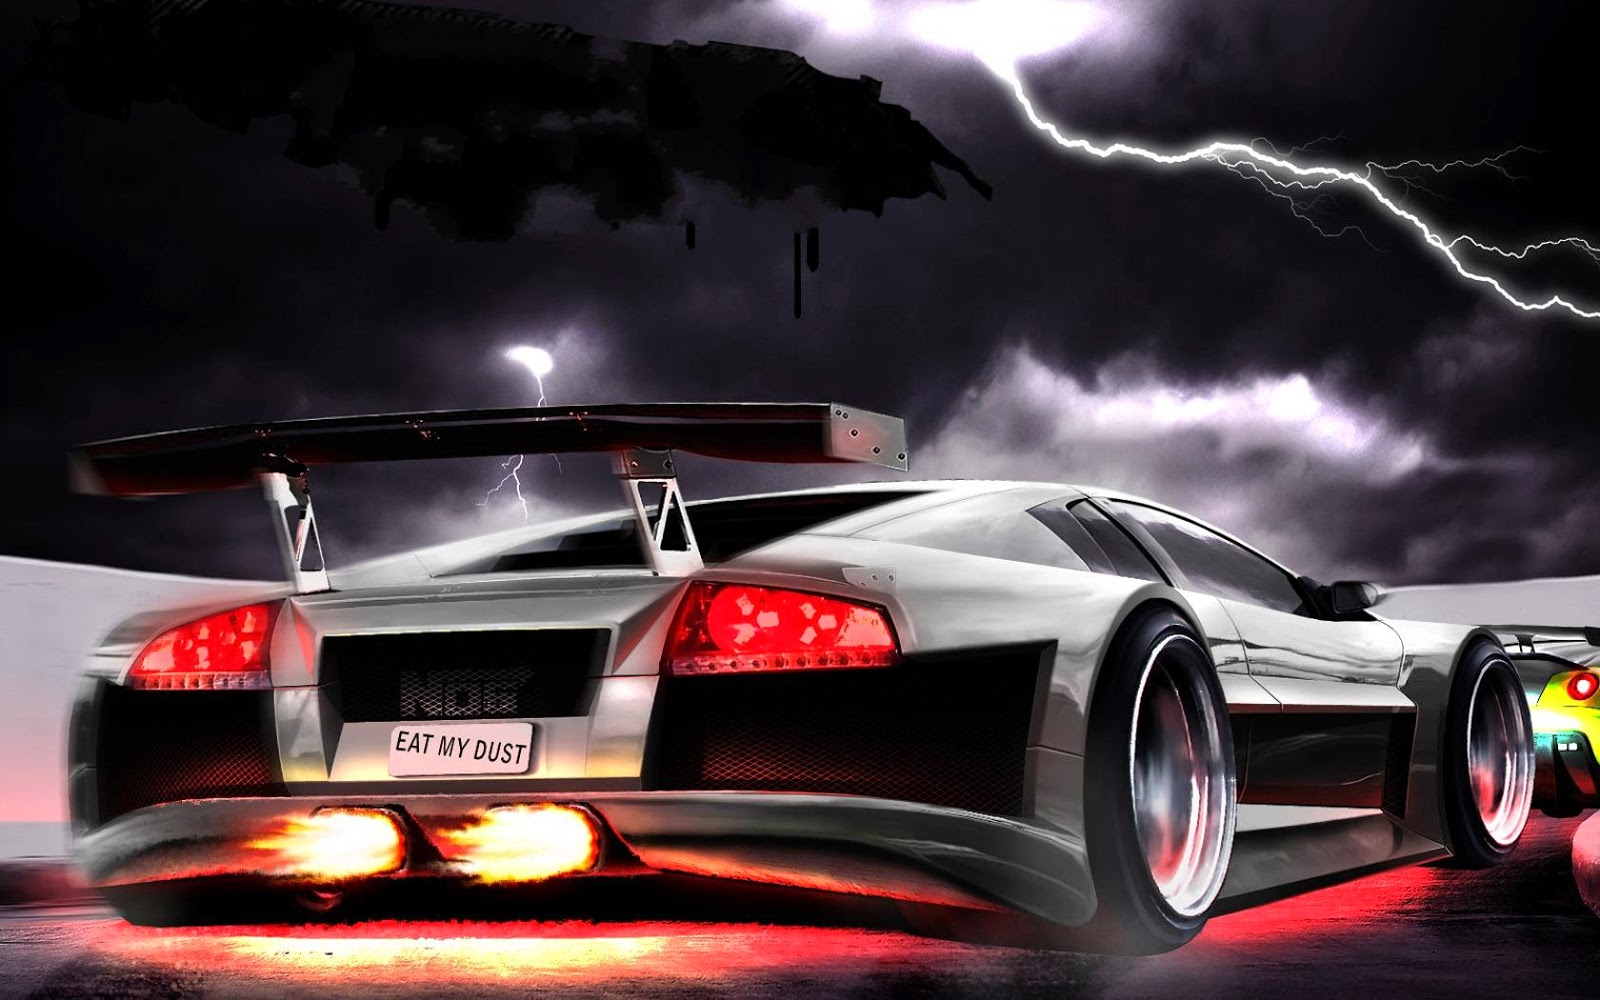 3d wallpapers car, 3d cars wallpapers full hd wallpapers